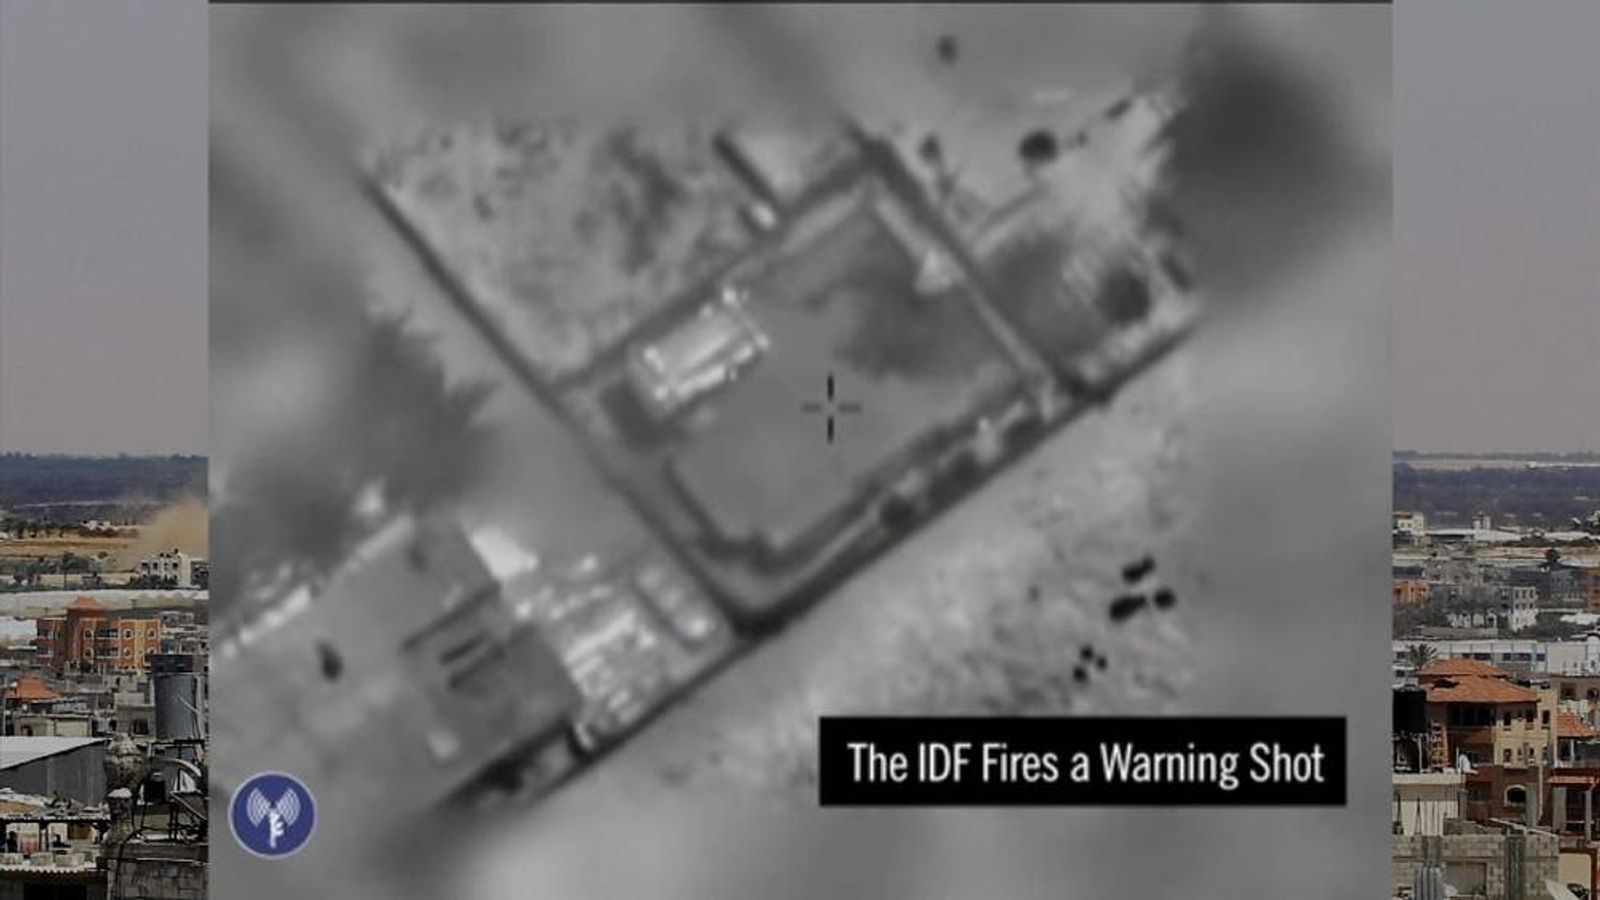 Video of IDF airstrike